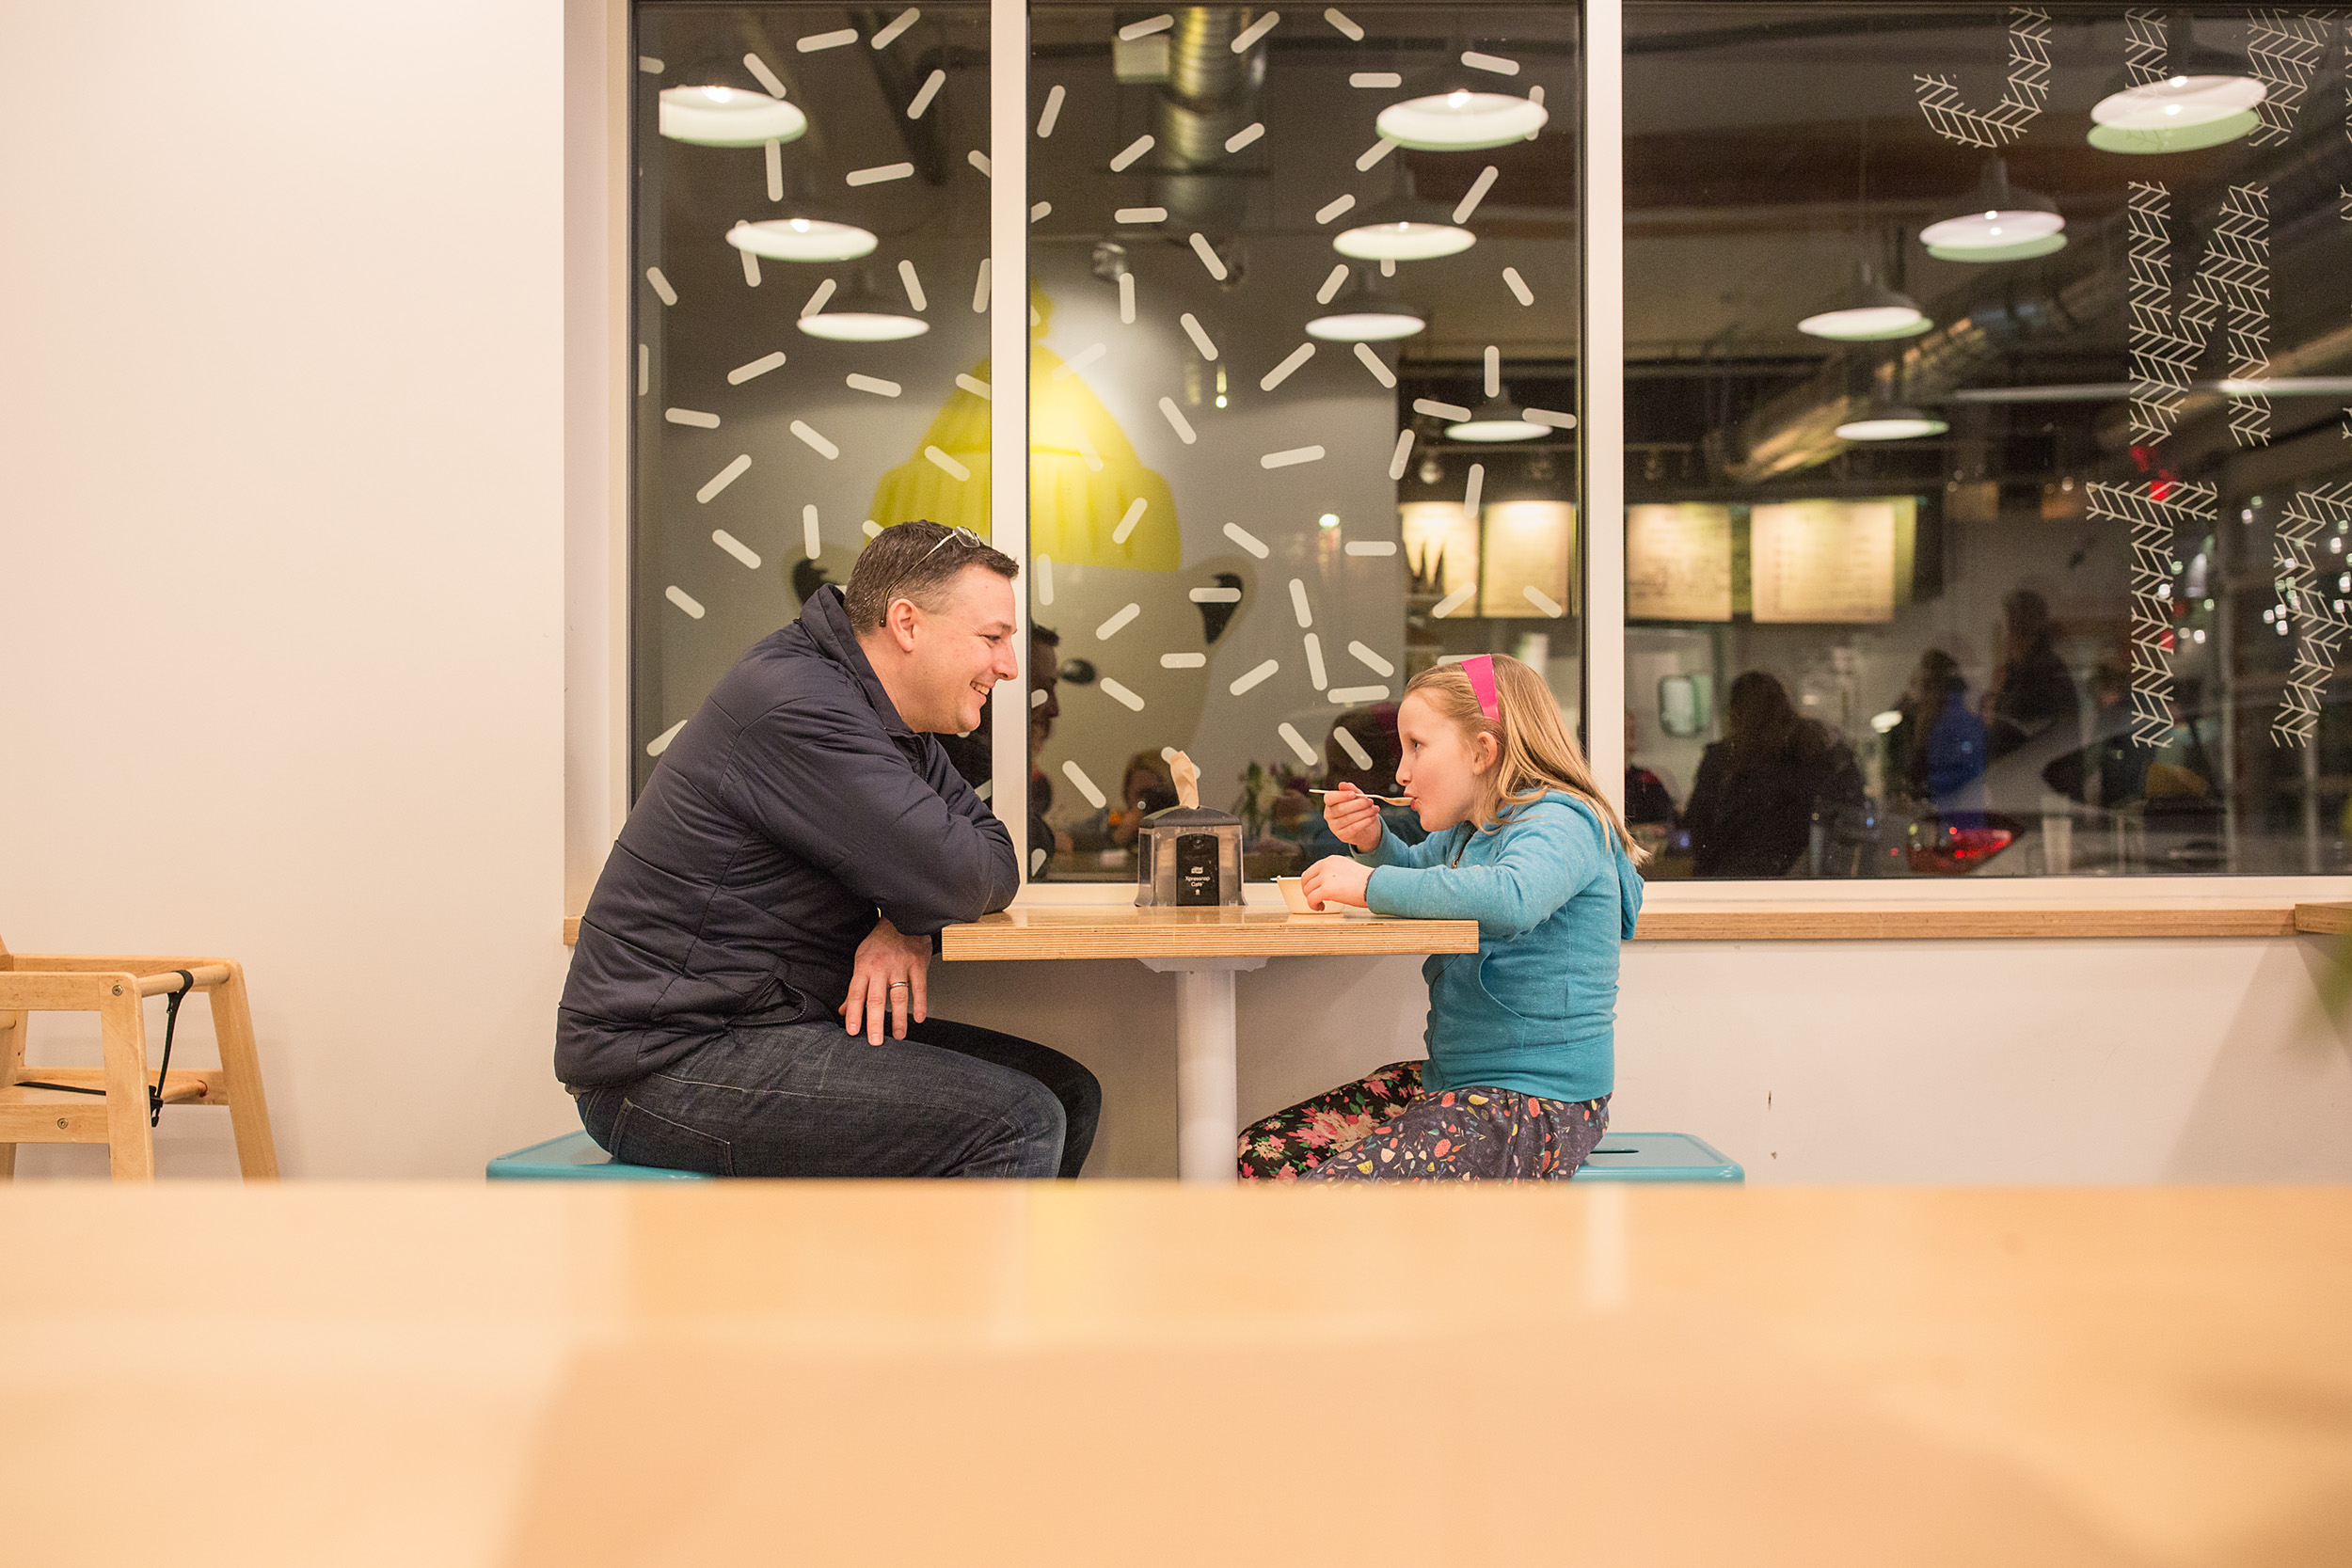 dad and daughter laughing and eating fro yo